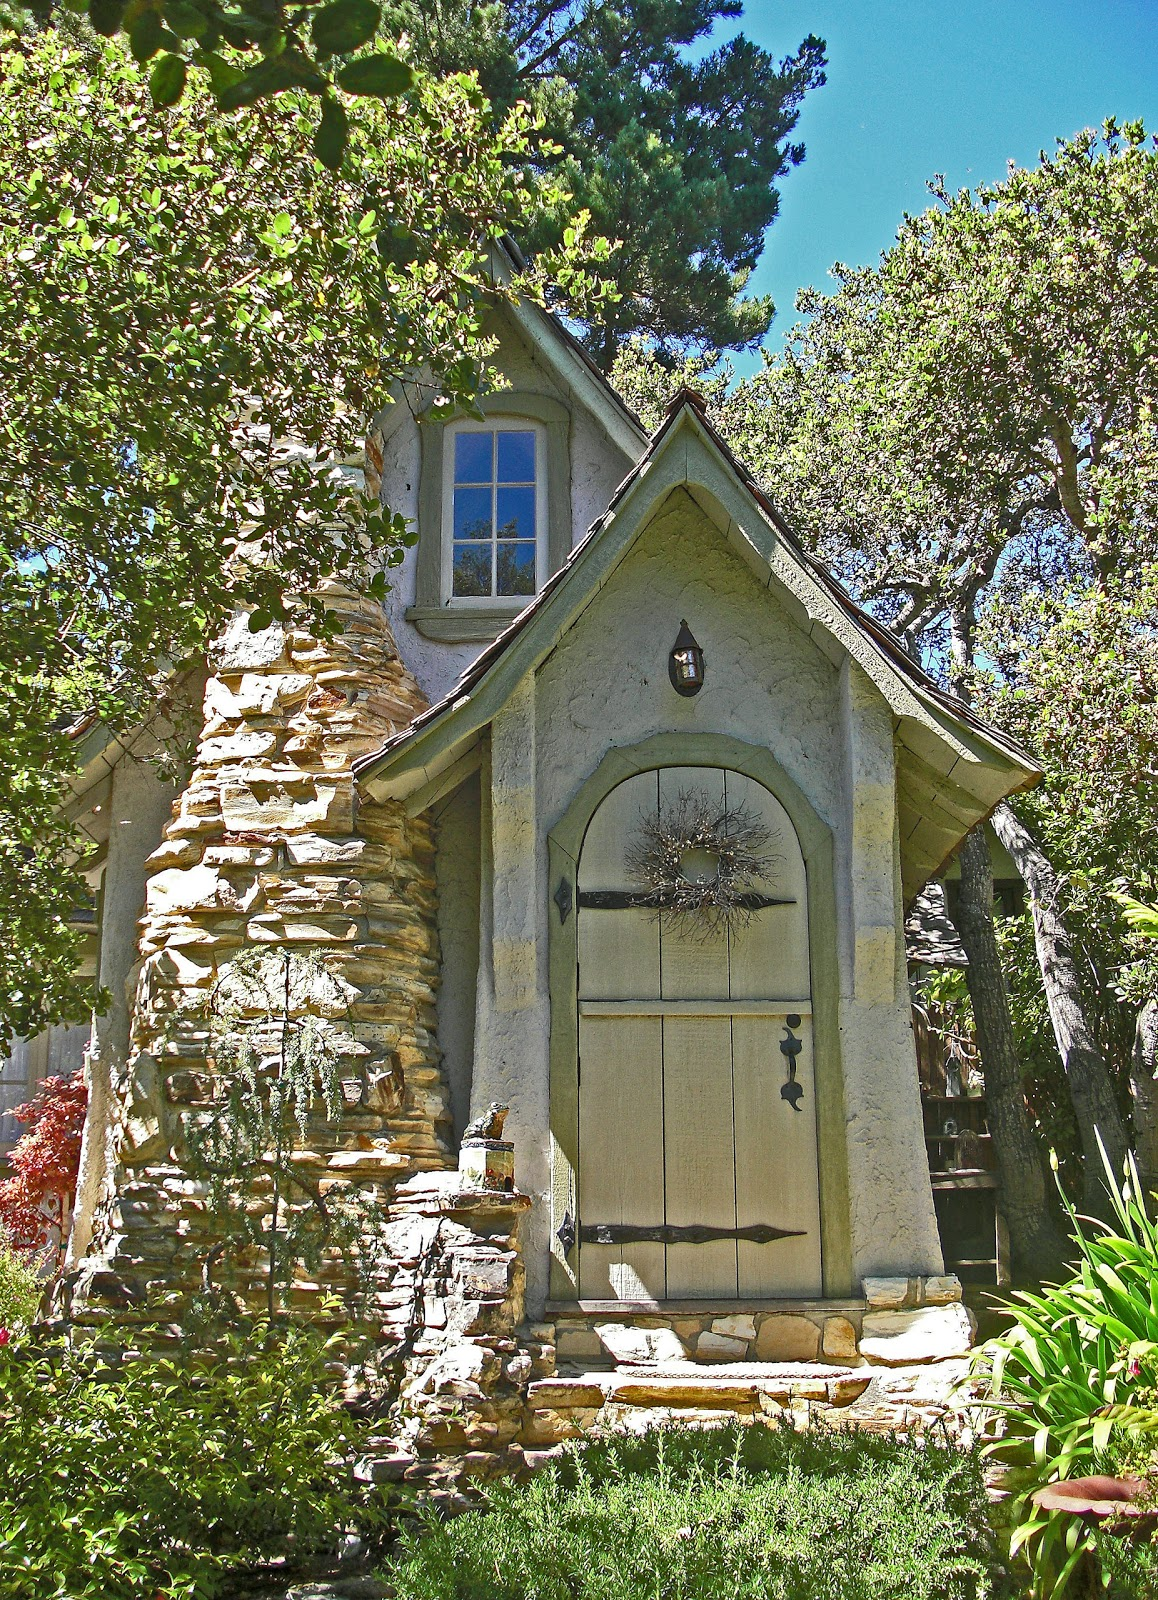 fairy tale cottages of hugh comstock hansel and gretel - Cottage Houses Photos